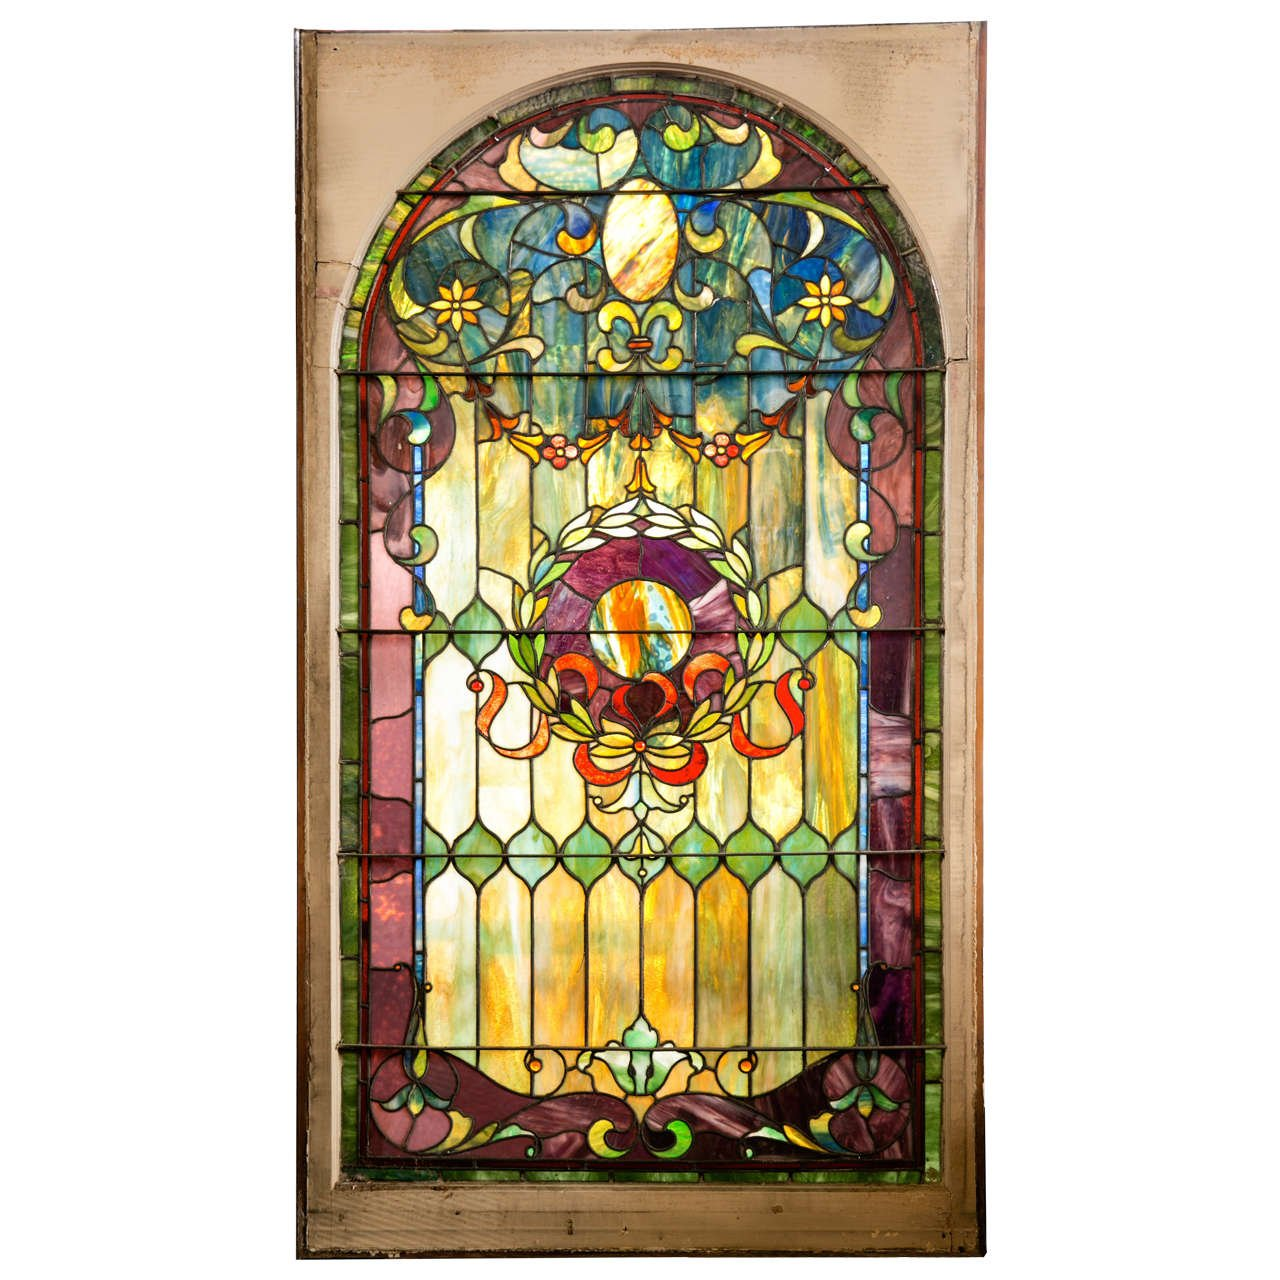 Old is better than new antique stained glass windows texas.